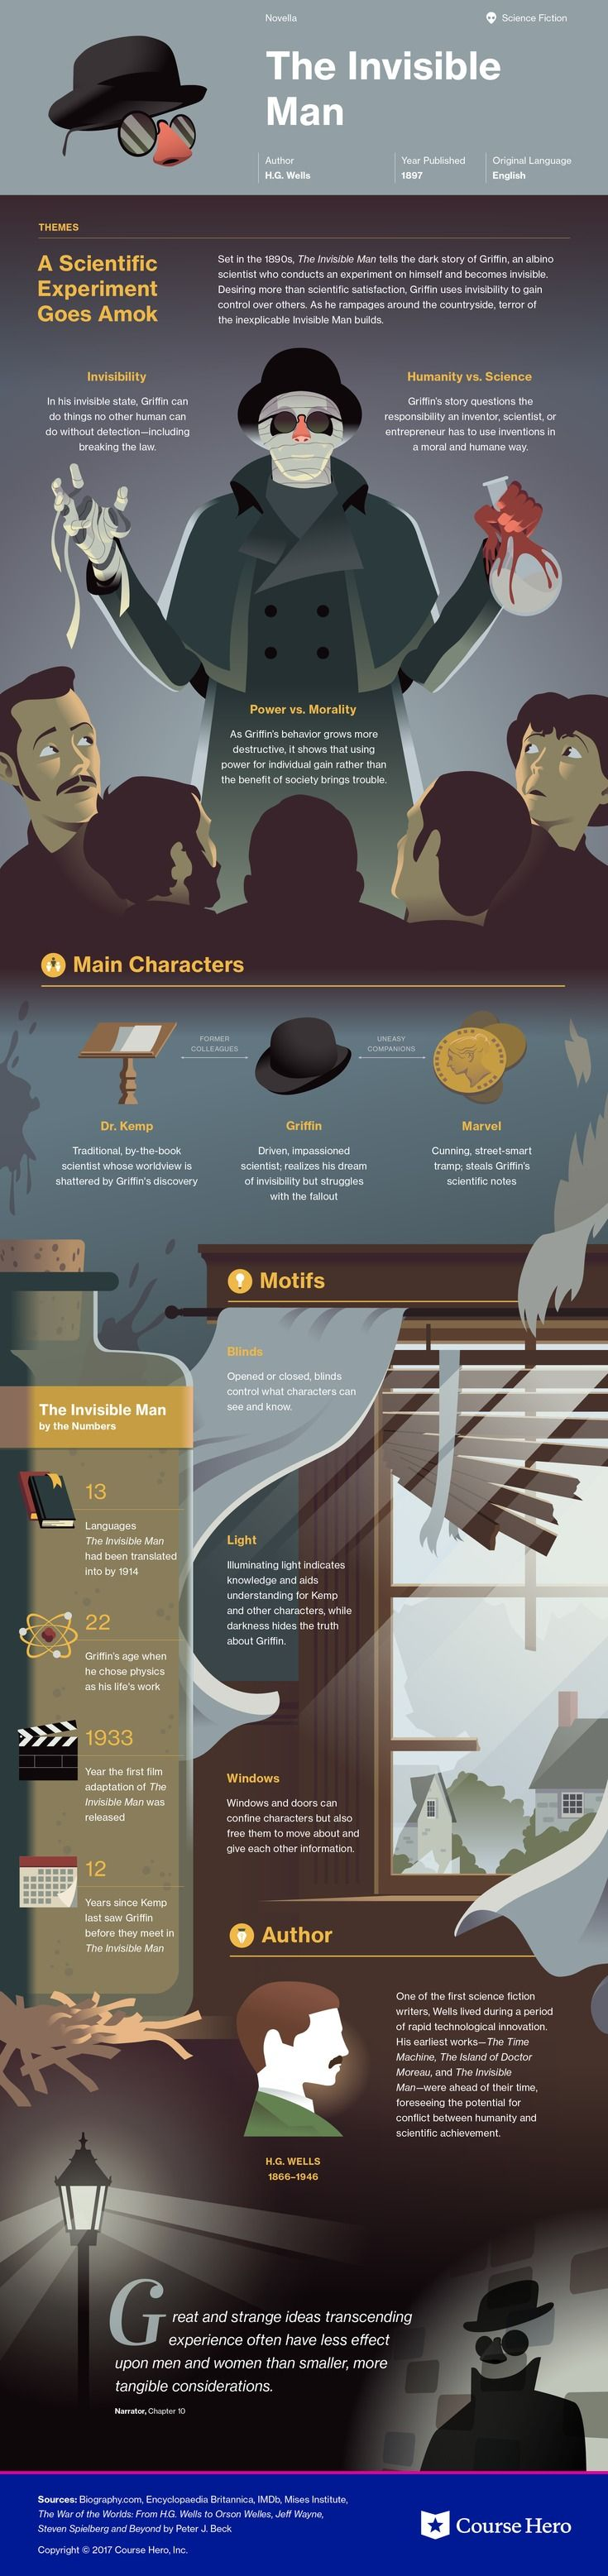 This @CourseHero infographic on The Invisible Man is both visually stunning and informative!